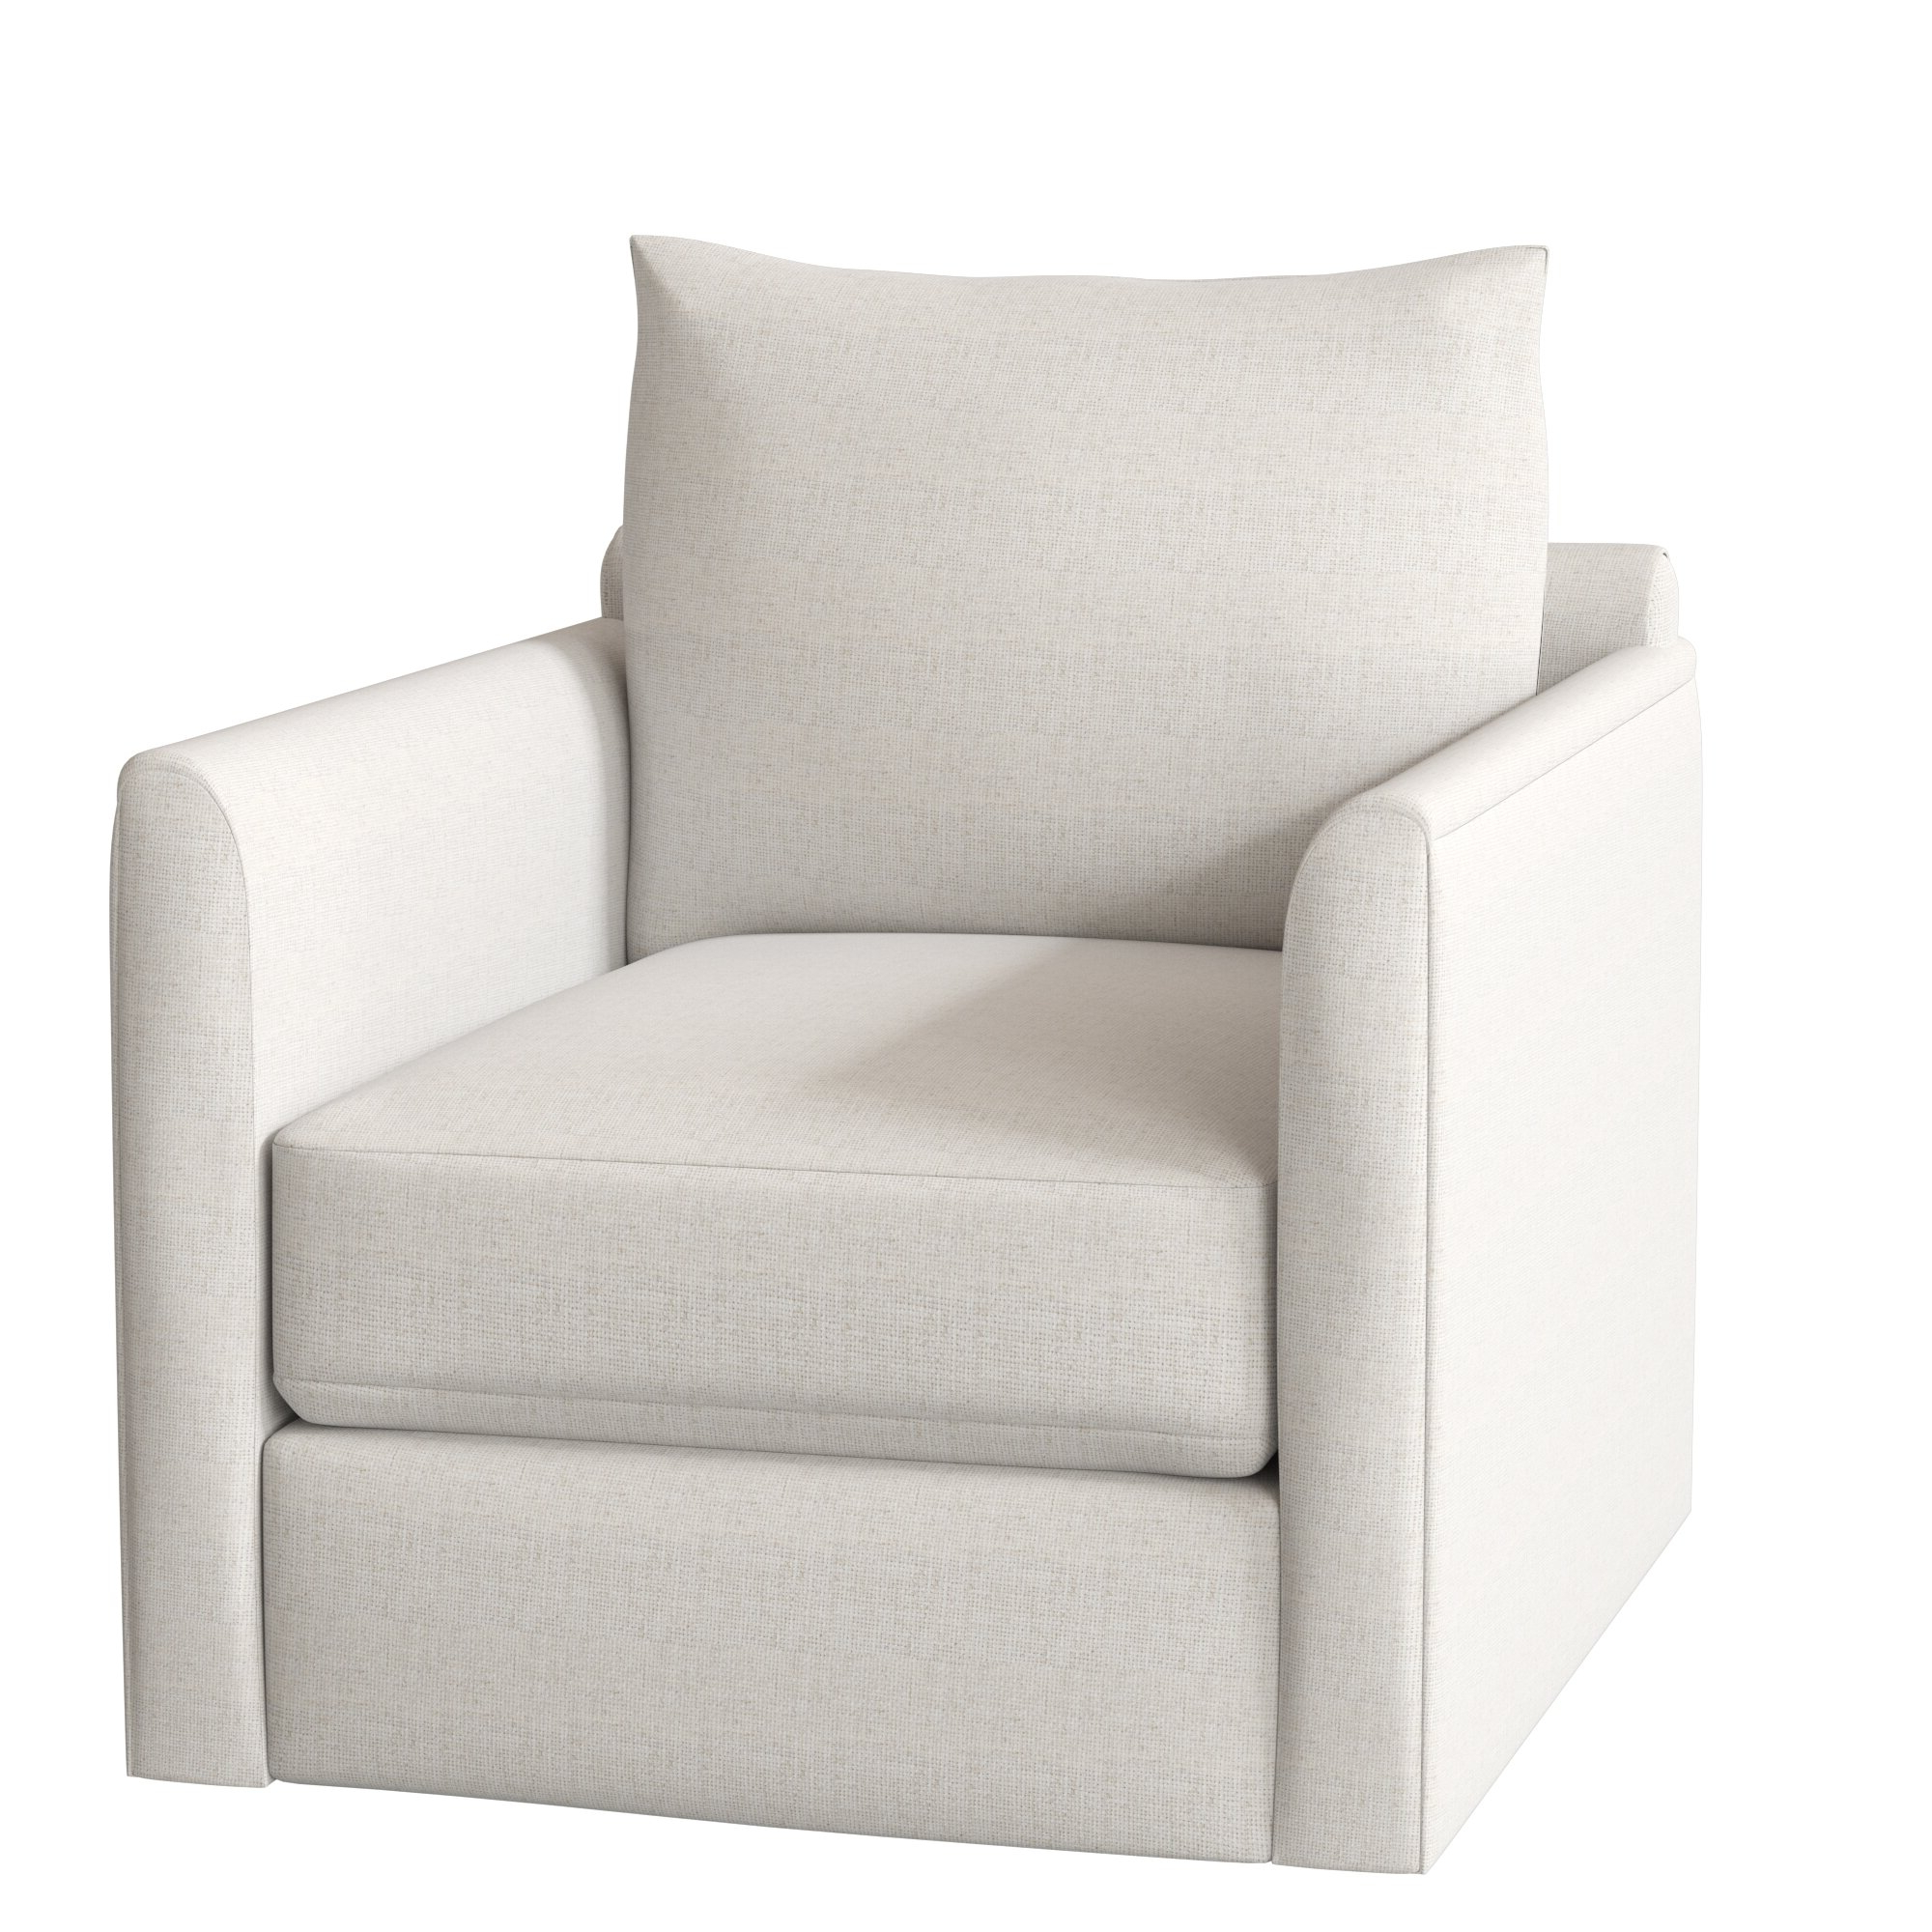 Kira Swivel Armchair Throughout Trendy Ronald Polyester Blend Armchairs (View 18 of 20)